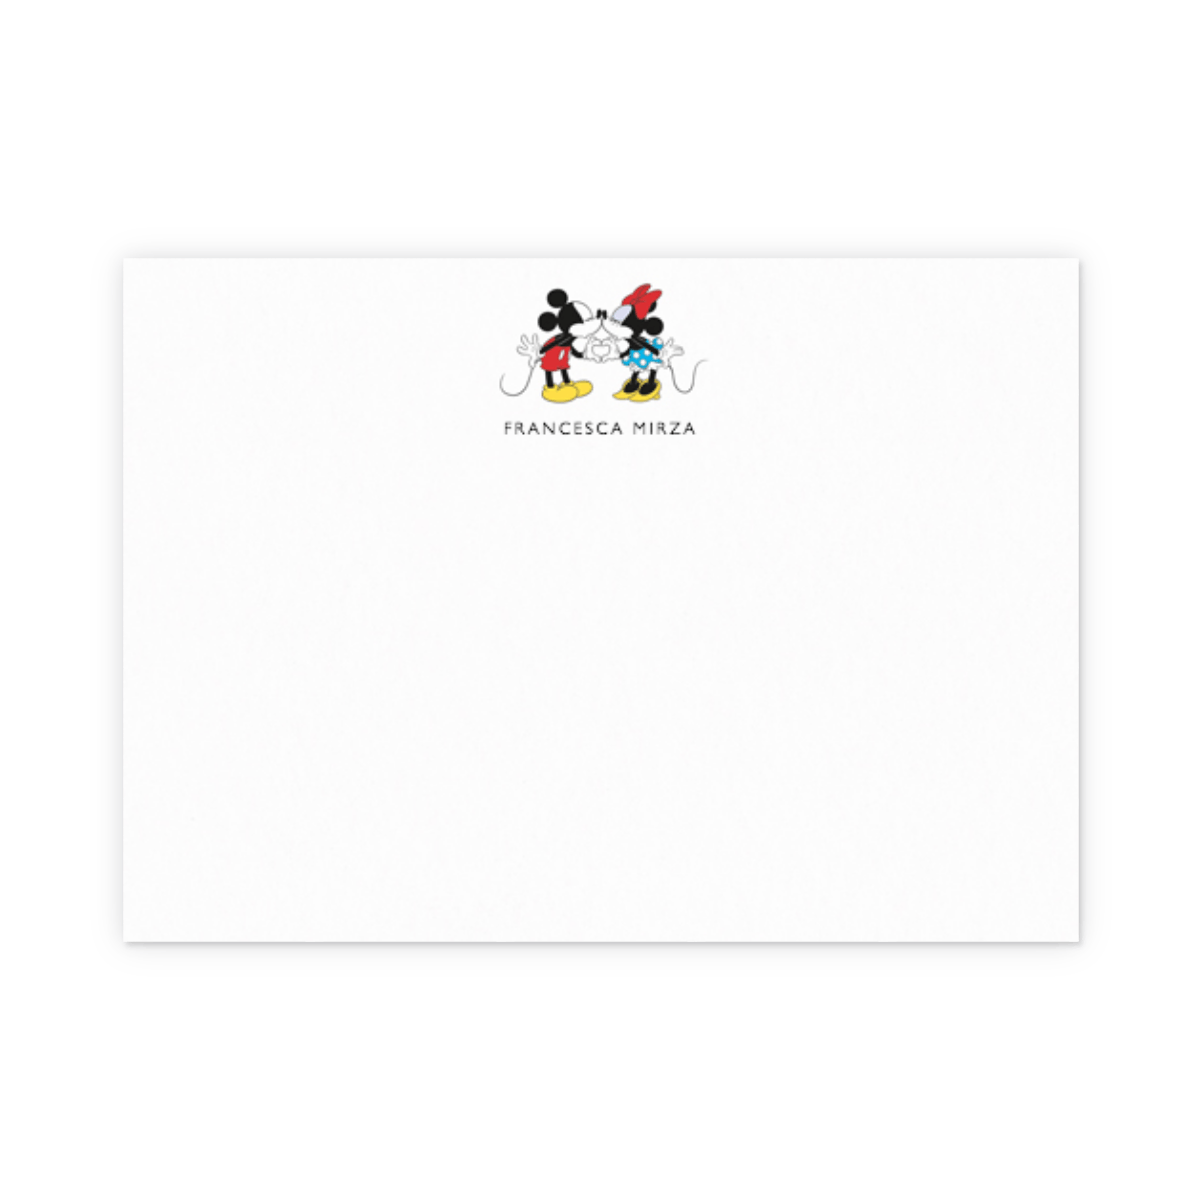 Https%3a%2f%2fwww.papier.com%2fproduct image%2f36041%2f10%2fmickey minnie mouse 9024 vorderseite 1523556118.png?ixlib=rb 1.1